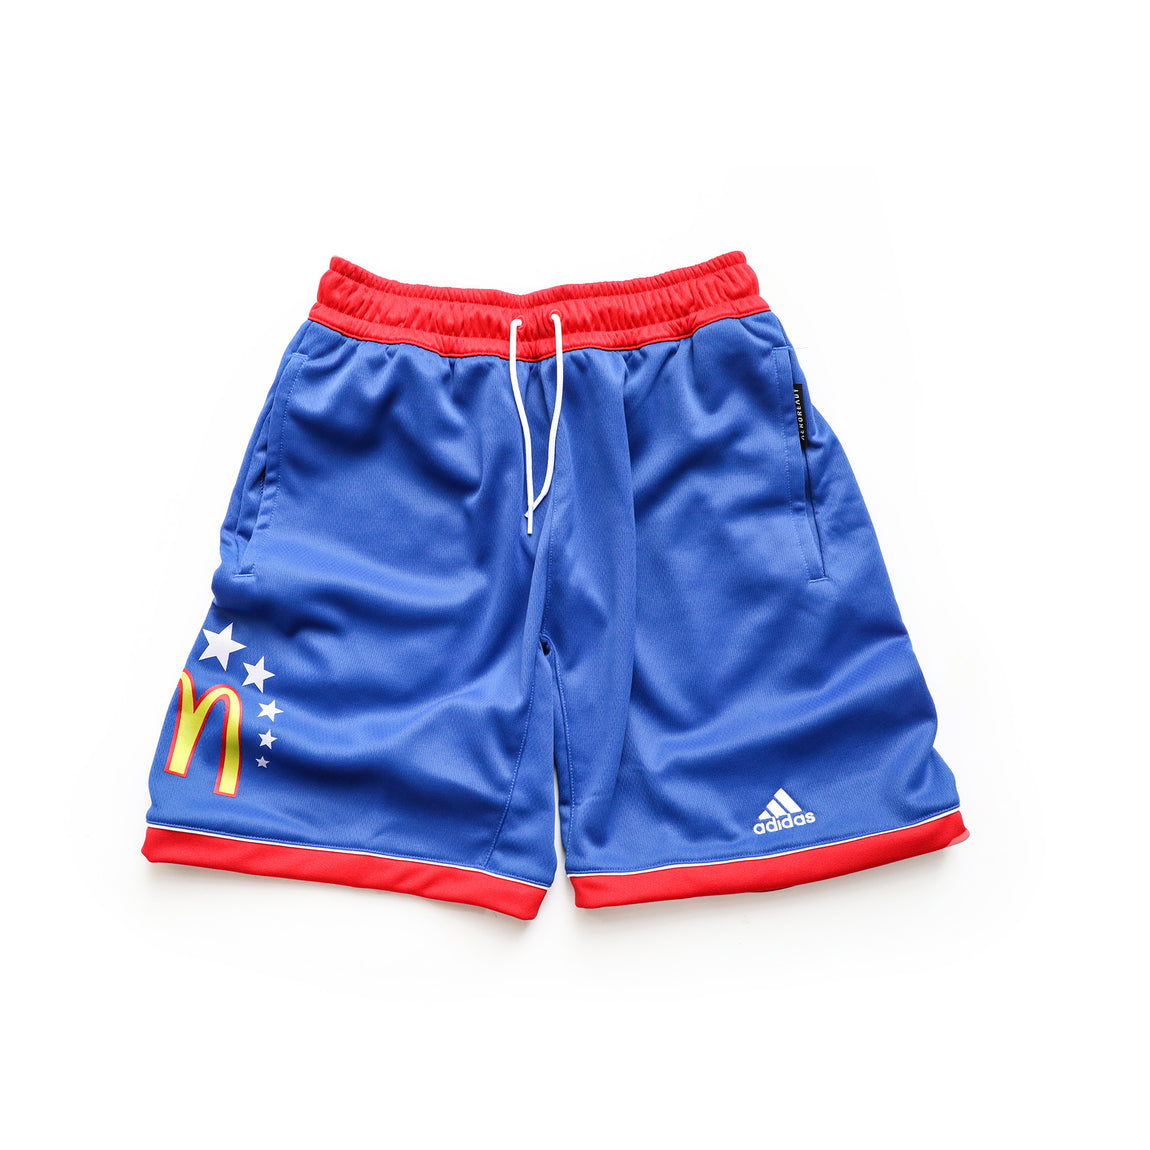 Adidas McDonald's All American Jamfest Shorts (Blue/Red) - Adidas McDonald's All American Jamfest Shorts (Blue/Red) -